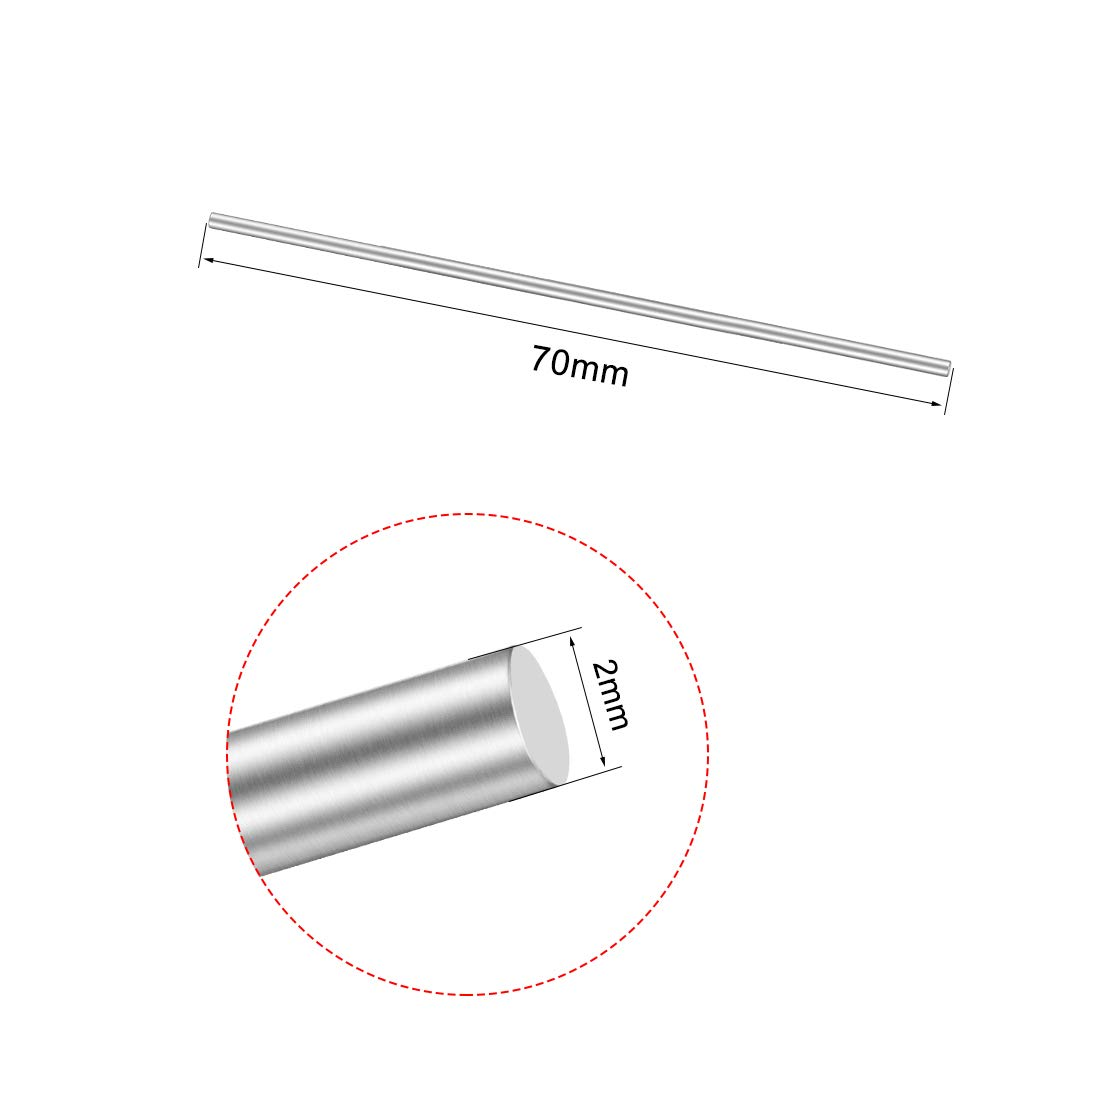 uxcell 1Pcs Stainless Steel Shaft Round Rod 70mmx2mm for DIY Toy RC Car Model Part a18050900ux0251